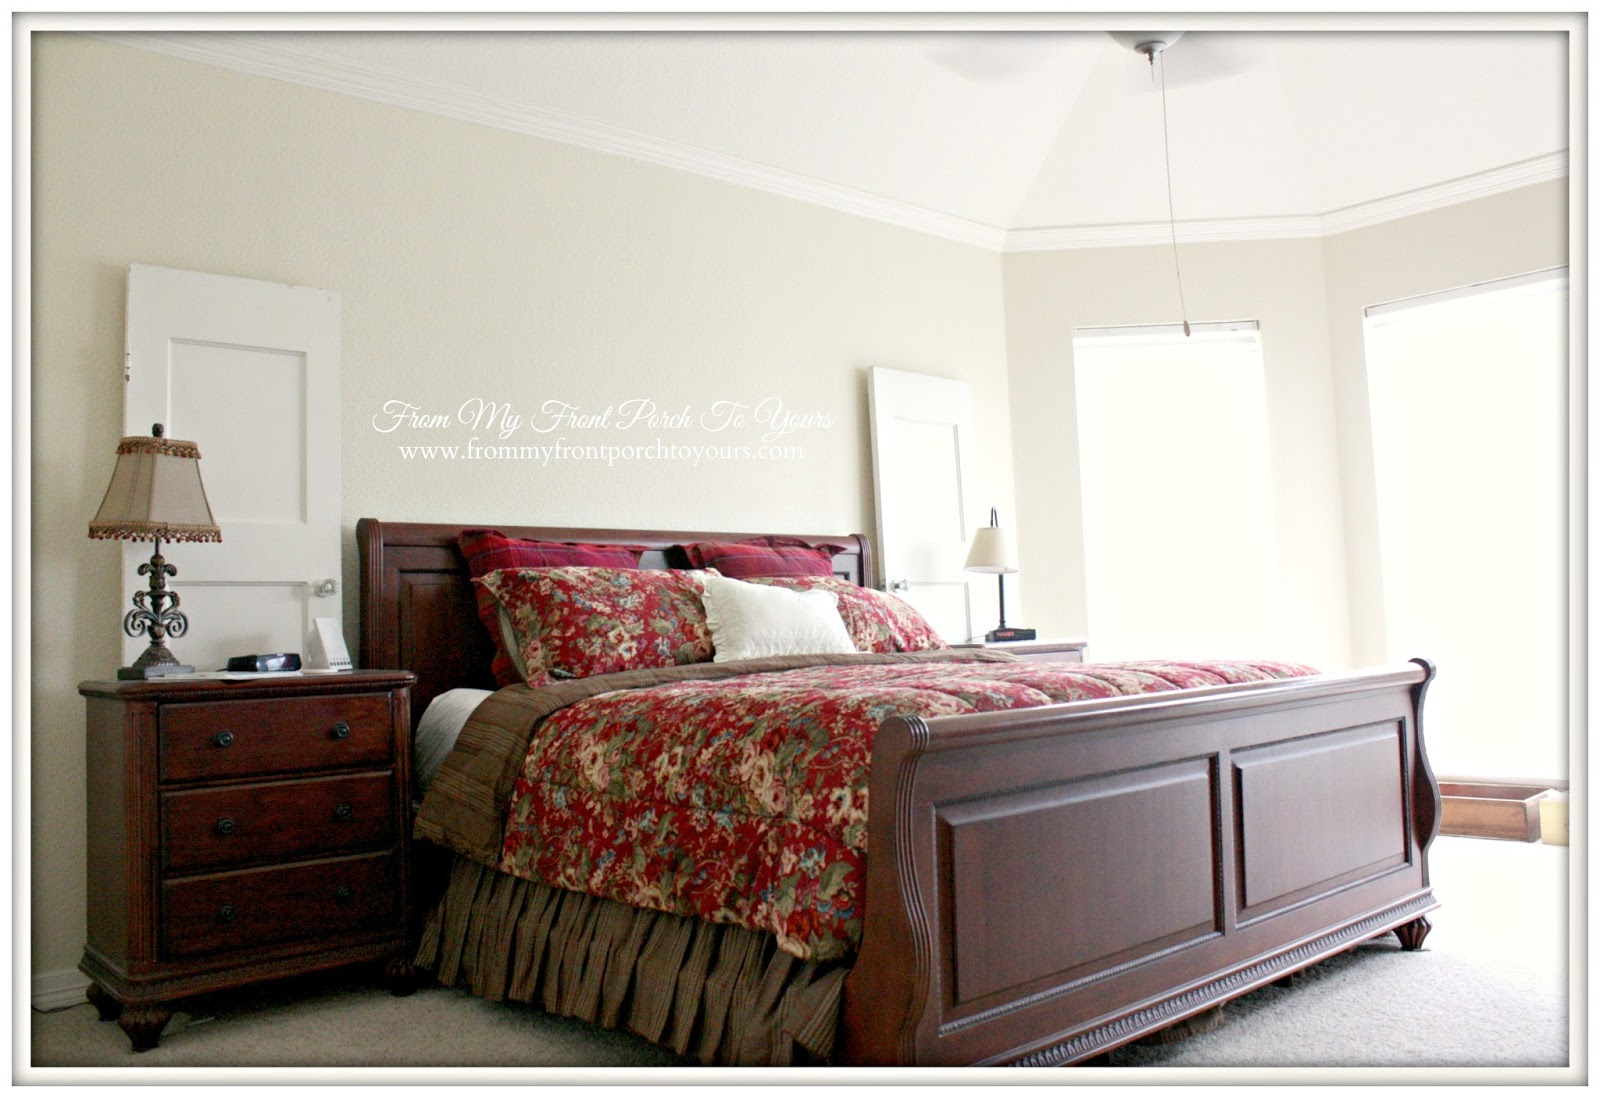 From My Front Porch To Yours Master Bedroom Makeover Before:Sherwin-Williams Harmony Paint